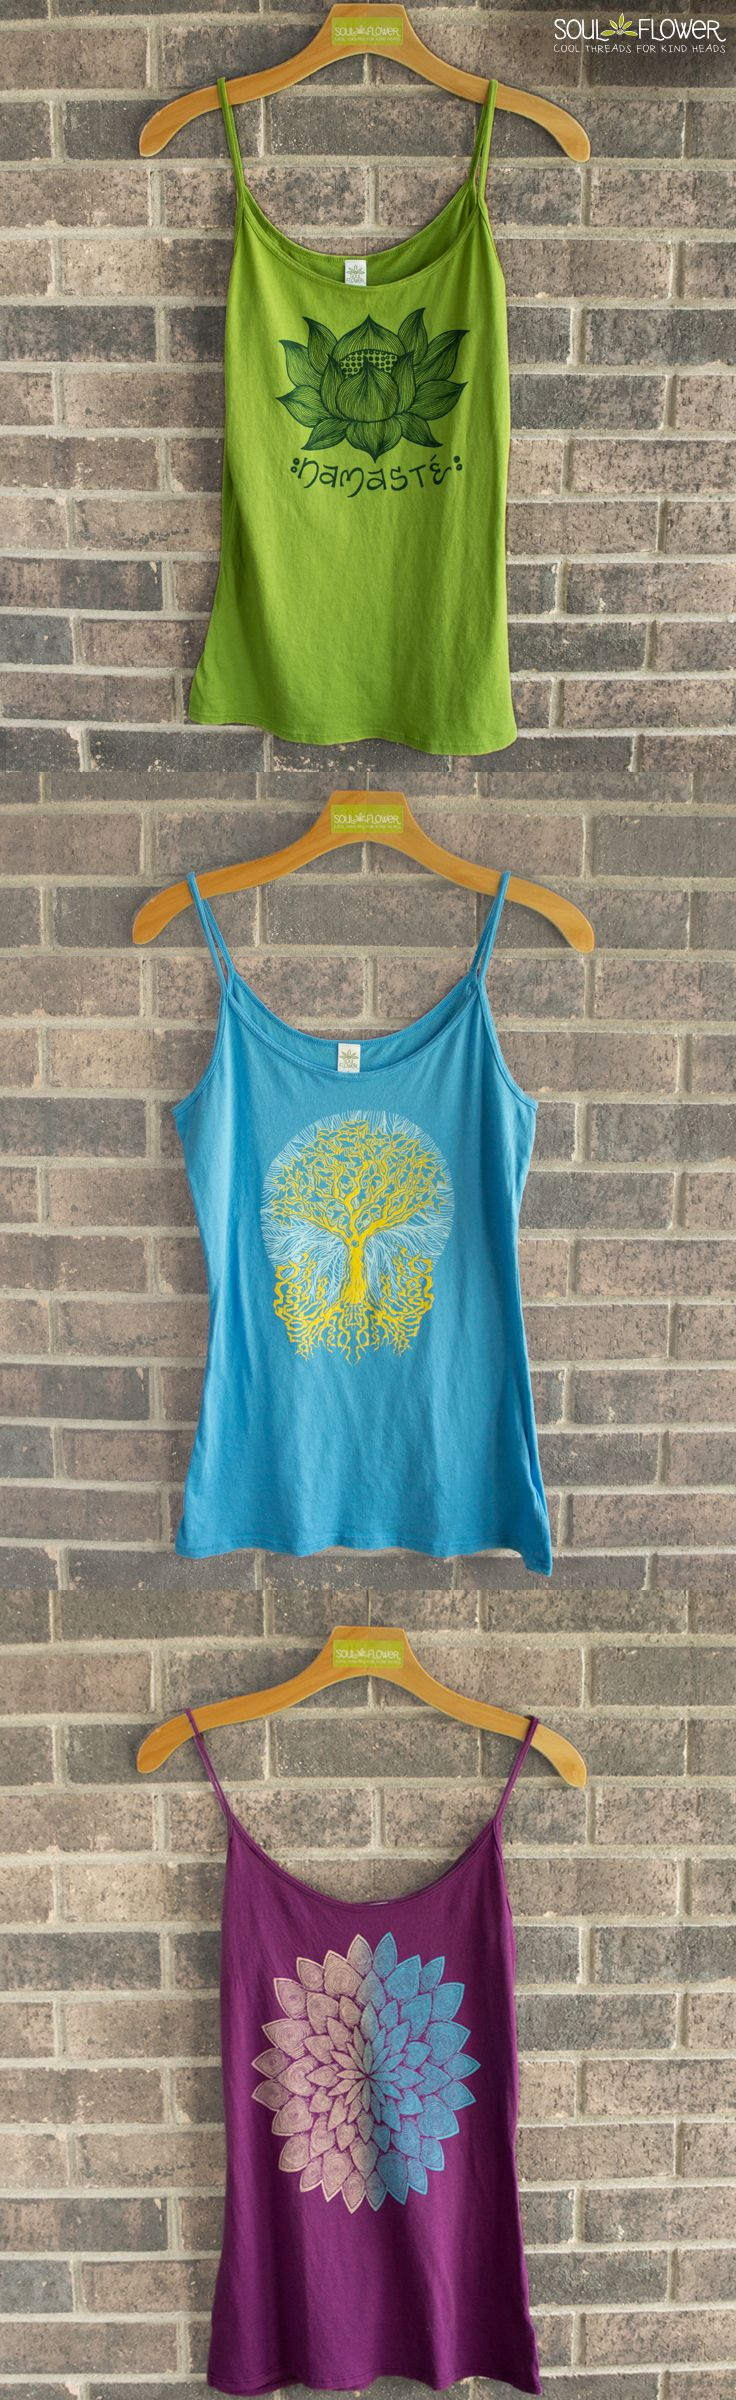 Organic Yoga Tank Tops - Soul Flower Clothing